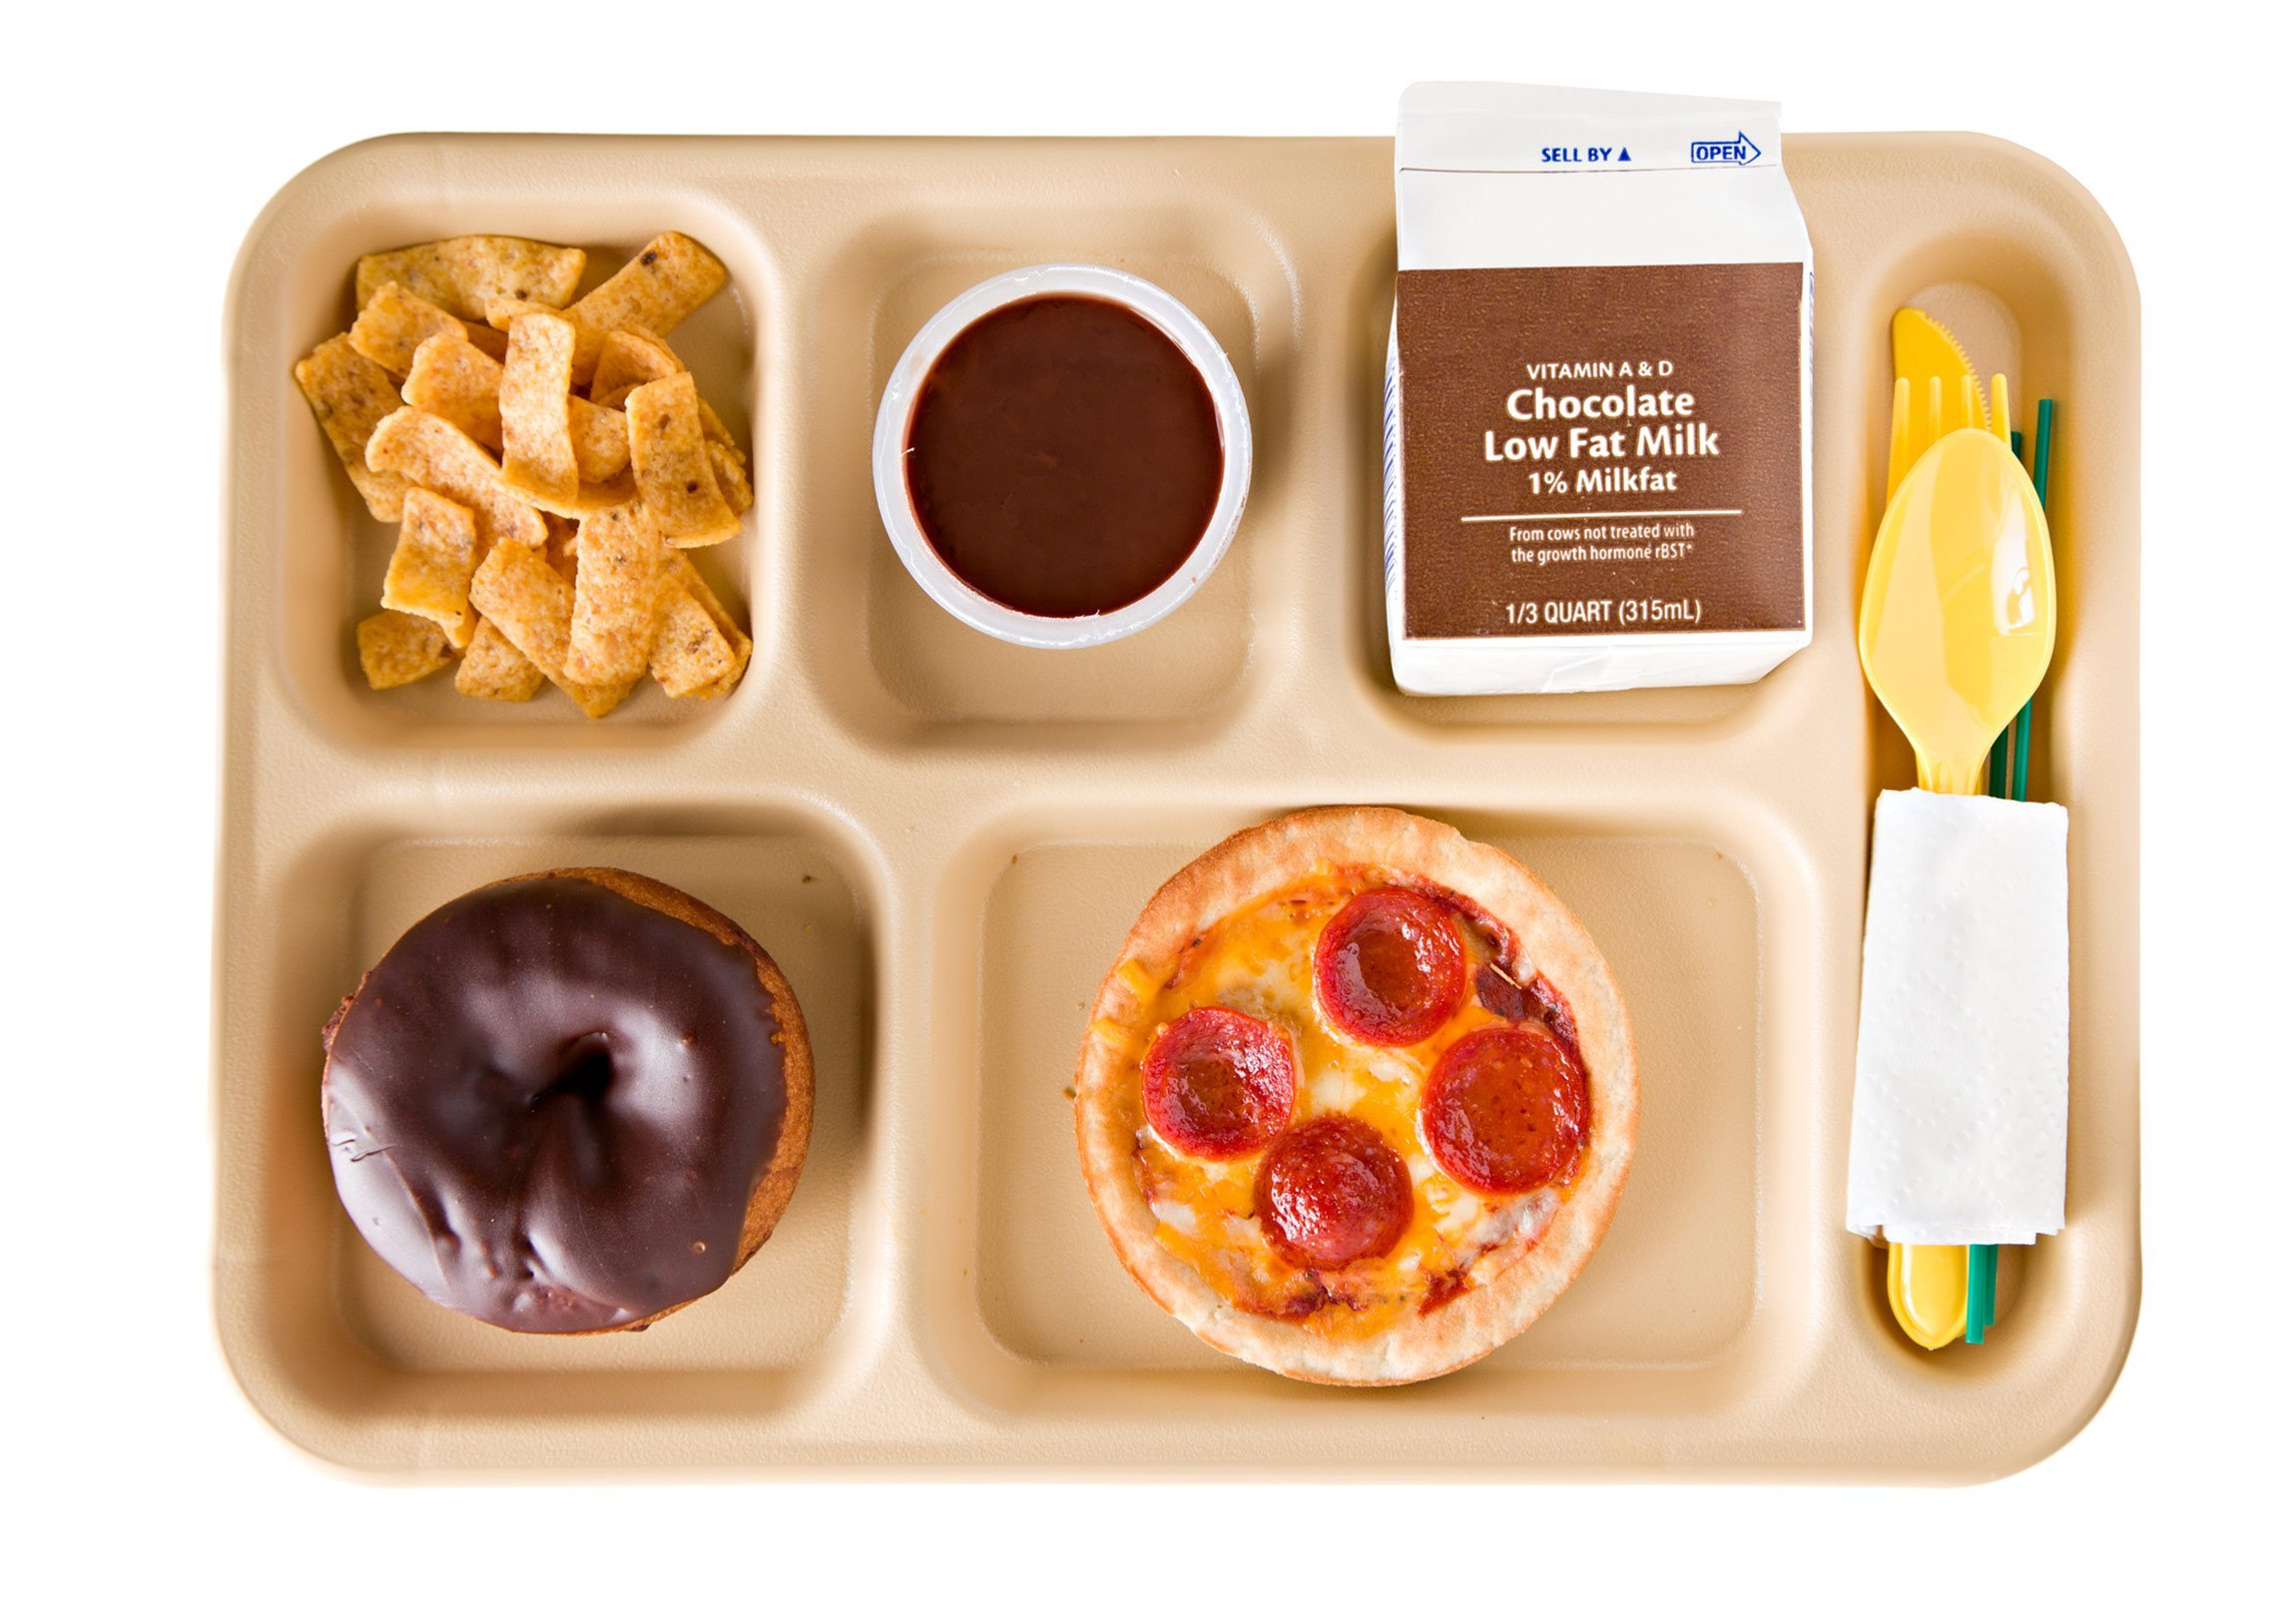 An unhealthy school lunch